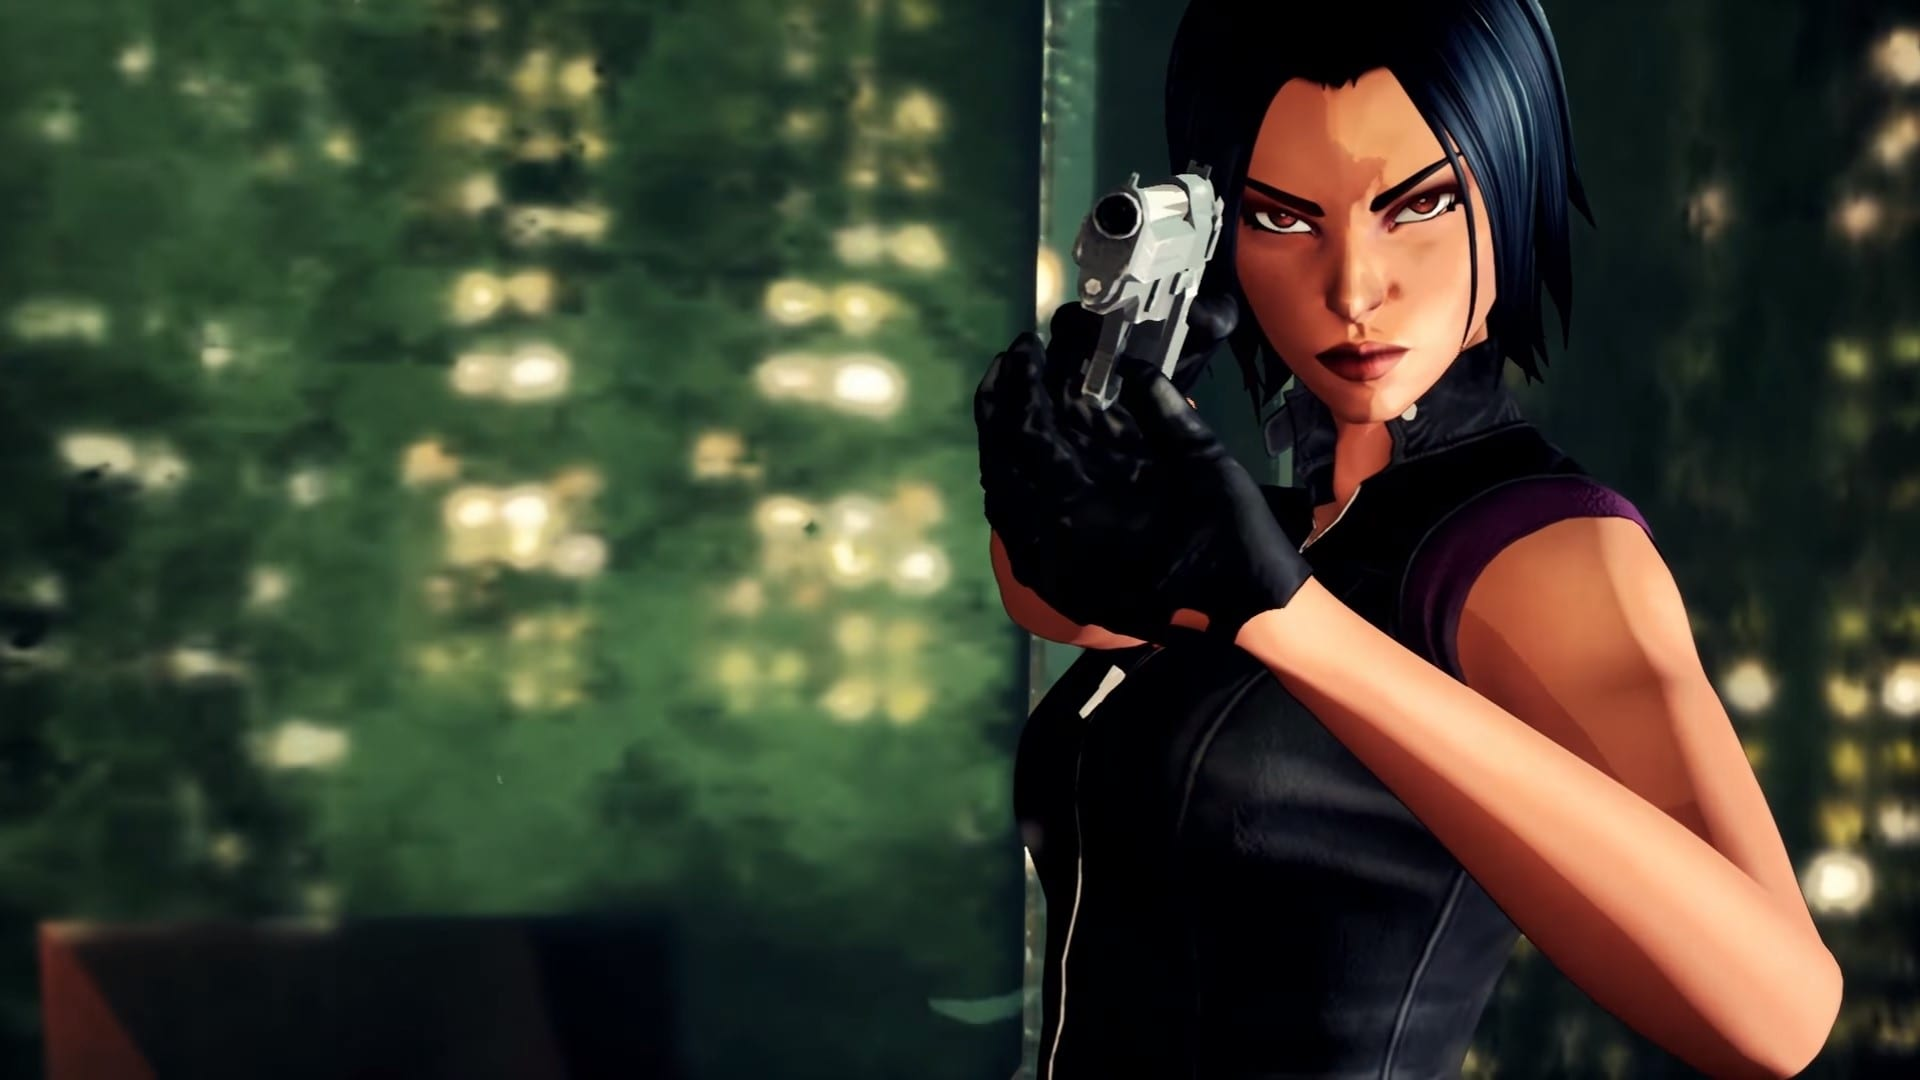 The Original Fear Effect is Being Remade